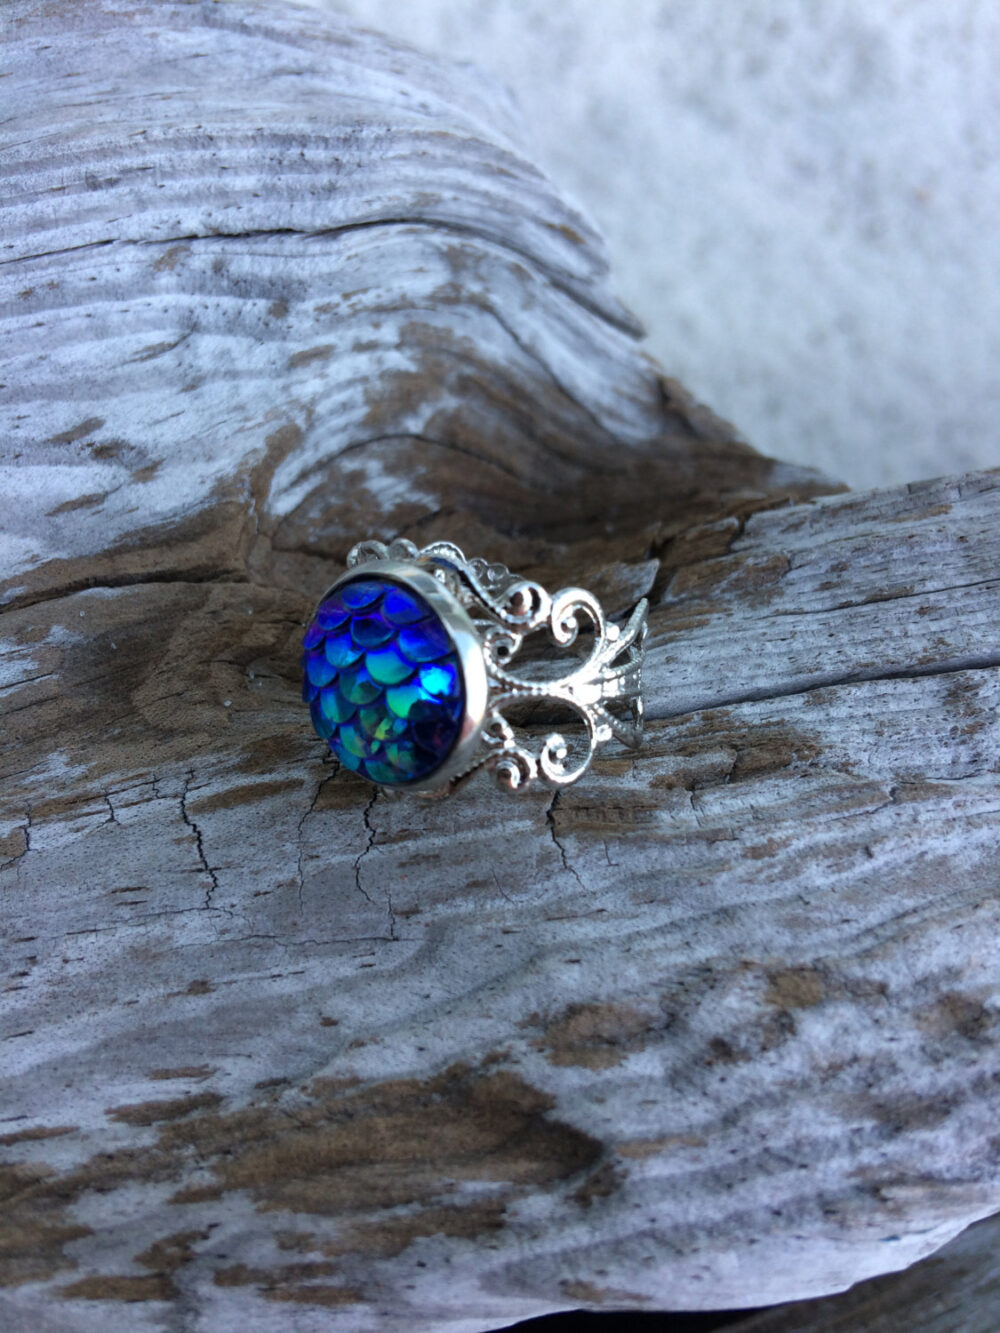 Silver Mermaid Ring, Fishing Jewelry, Christian Rings, Gift, Gift